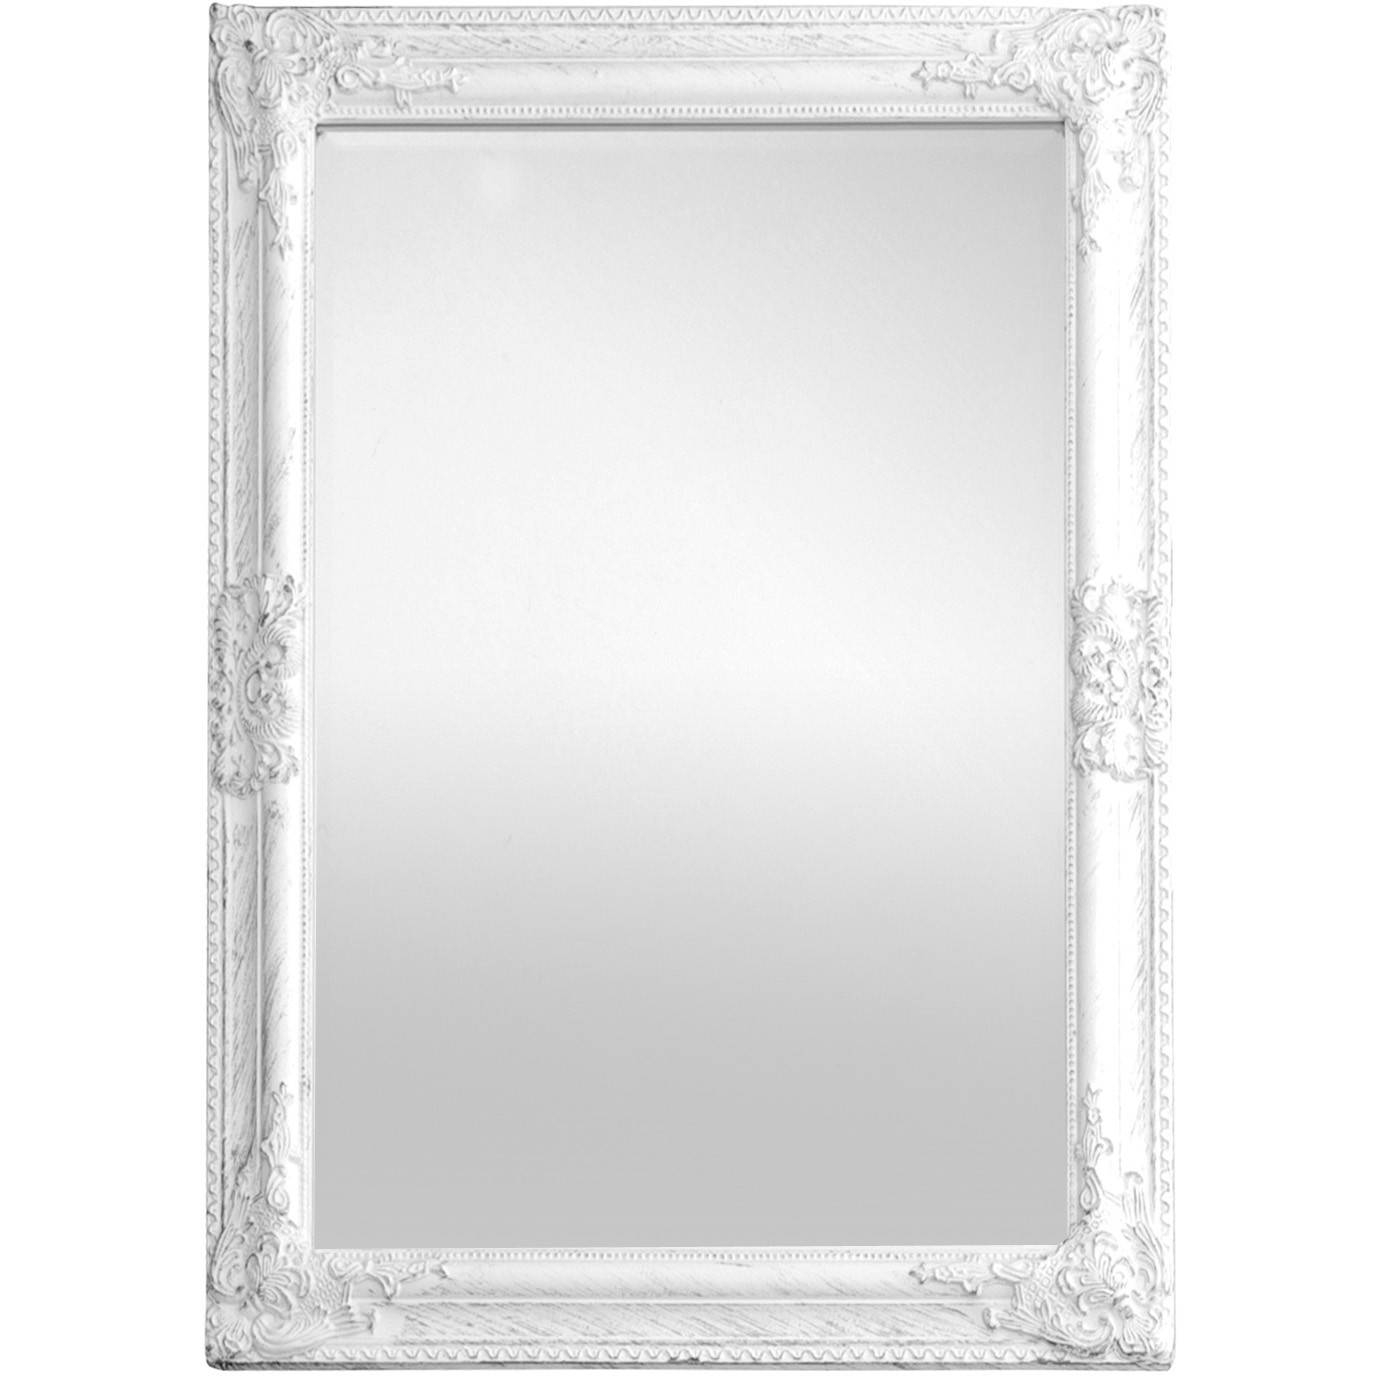 Antique Wooden Framed Mirror (White) regarding White Antique Mirrors (Image 8 of 25)